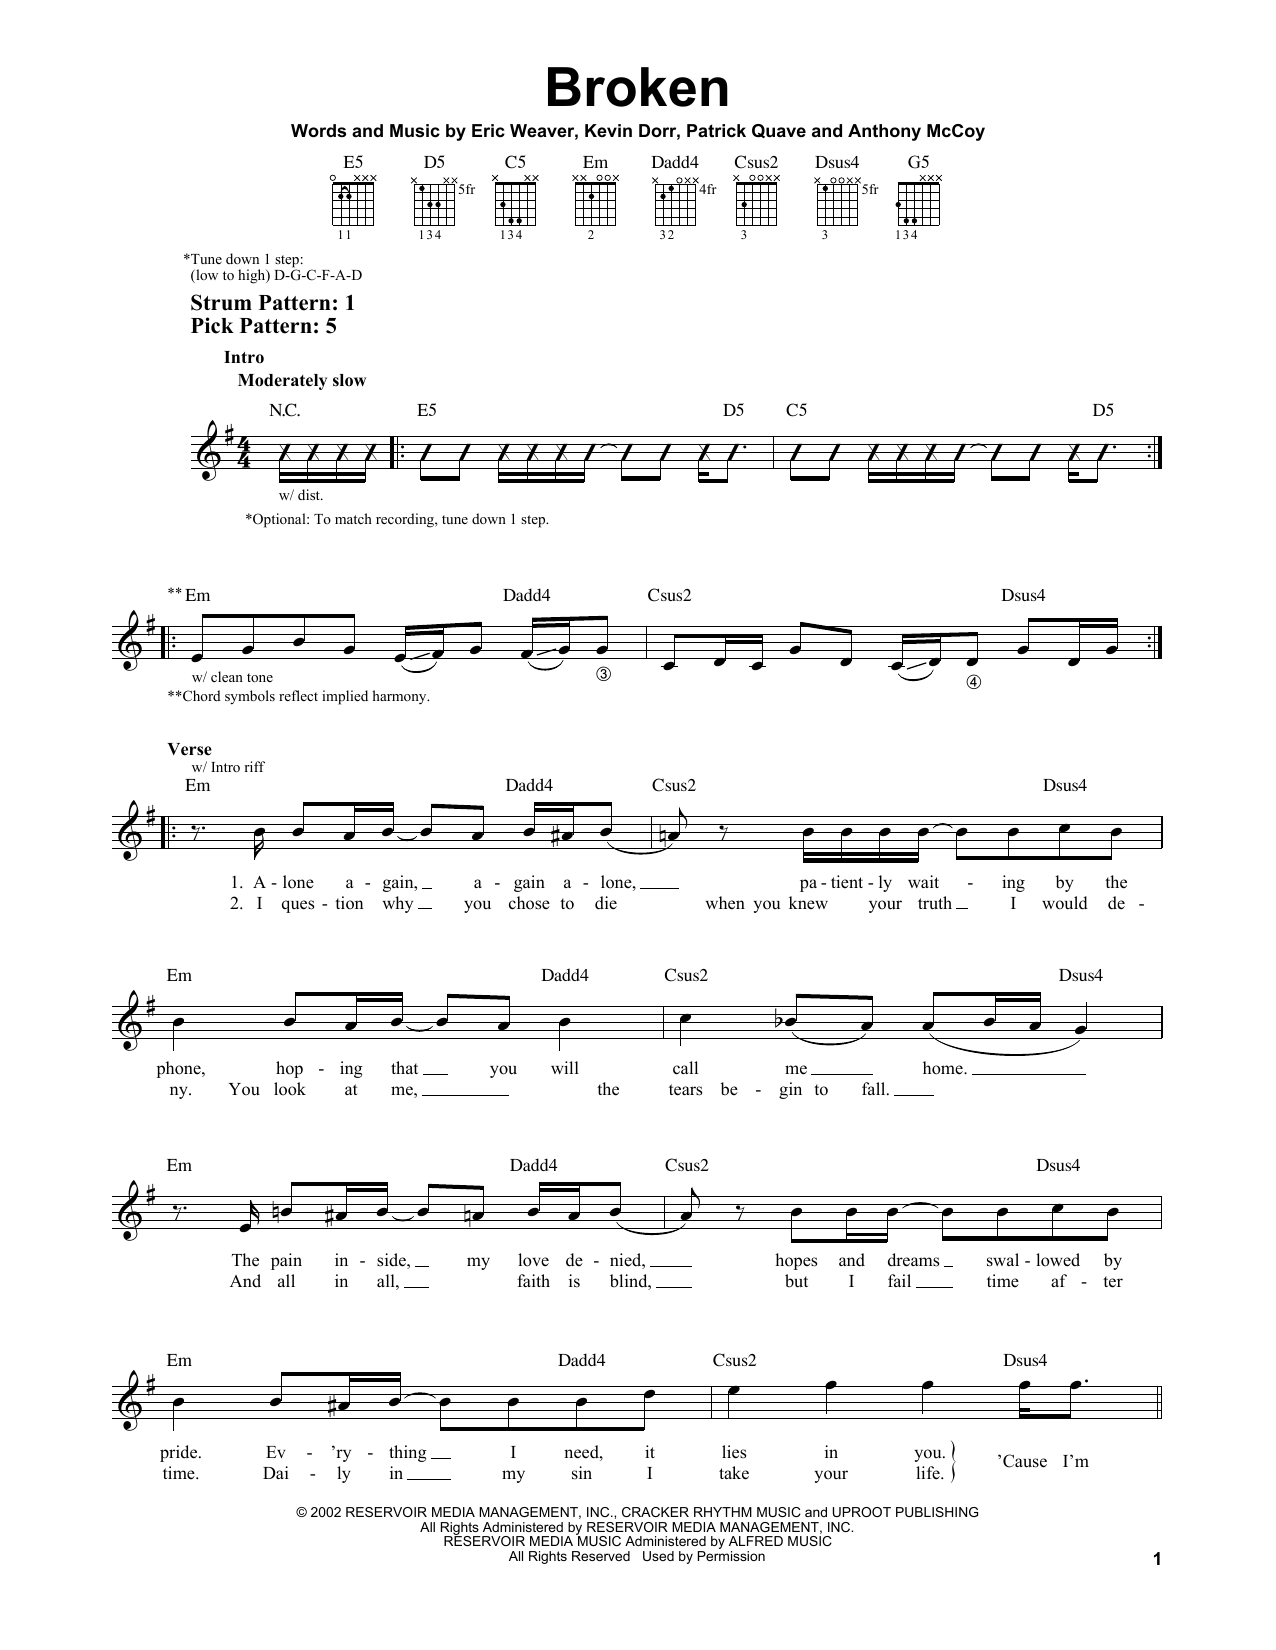 12 Stones Broken sheet music notes and chords